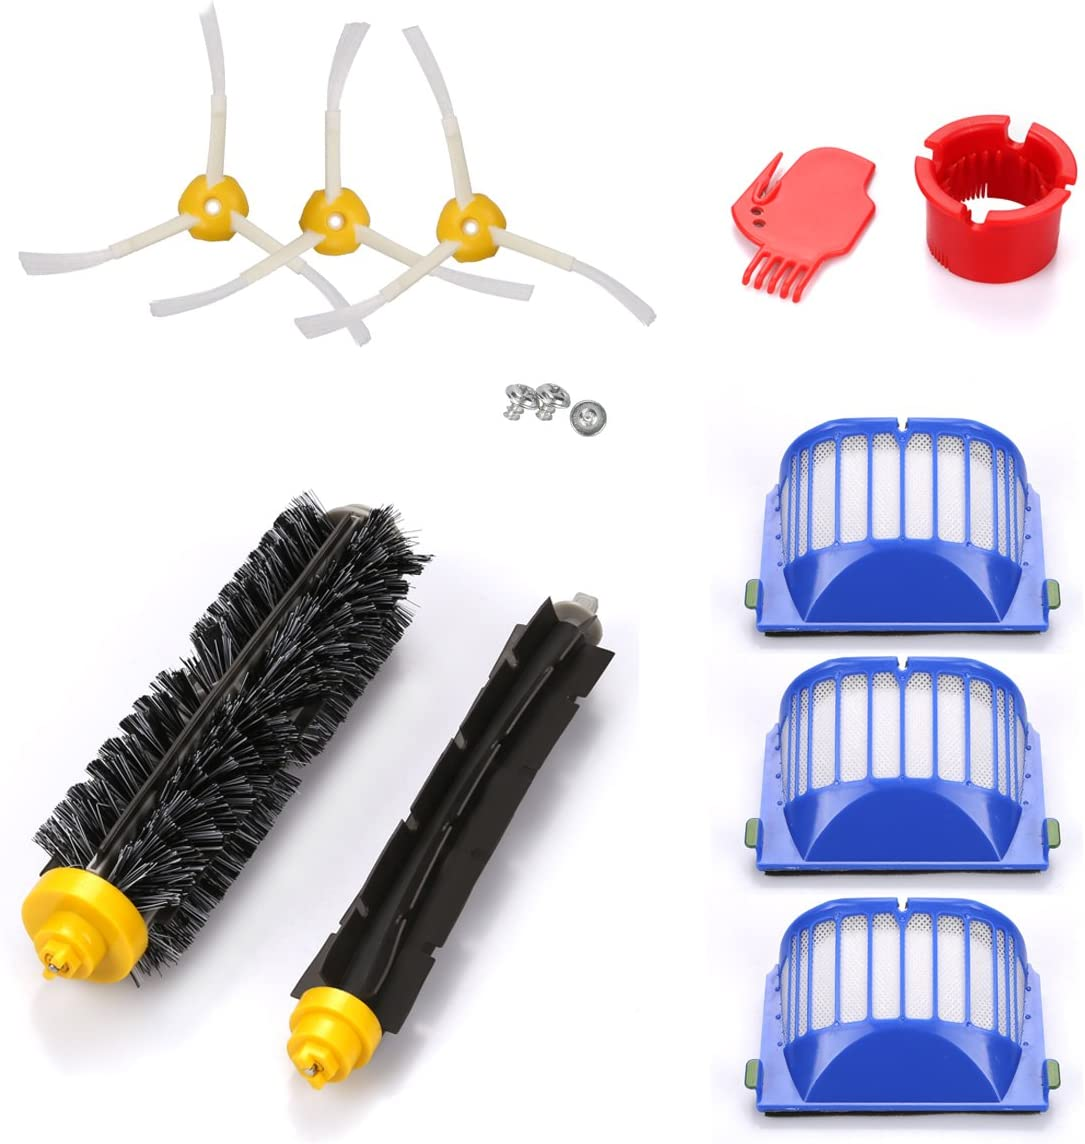 energup Accessory for Irobot Roomba 500 600 610 620 650 Series Vacuum Cleaner Replacement Part Include 3 Pack Filter, Side Brush, 1 Pack Bristle Brush & Flexible Beater Brush 718qrYSv2nL